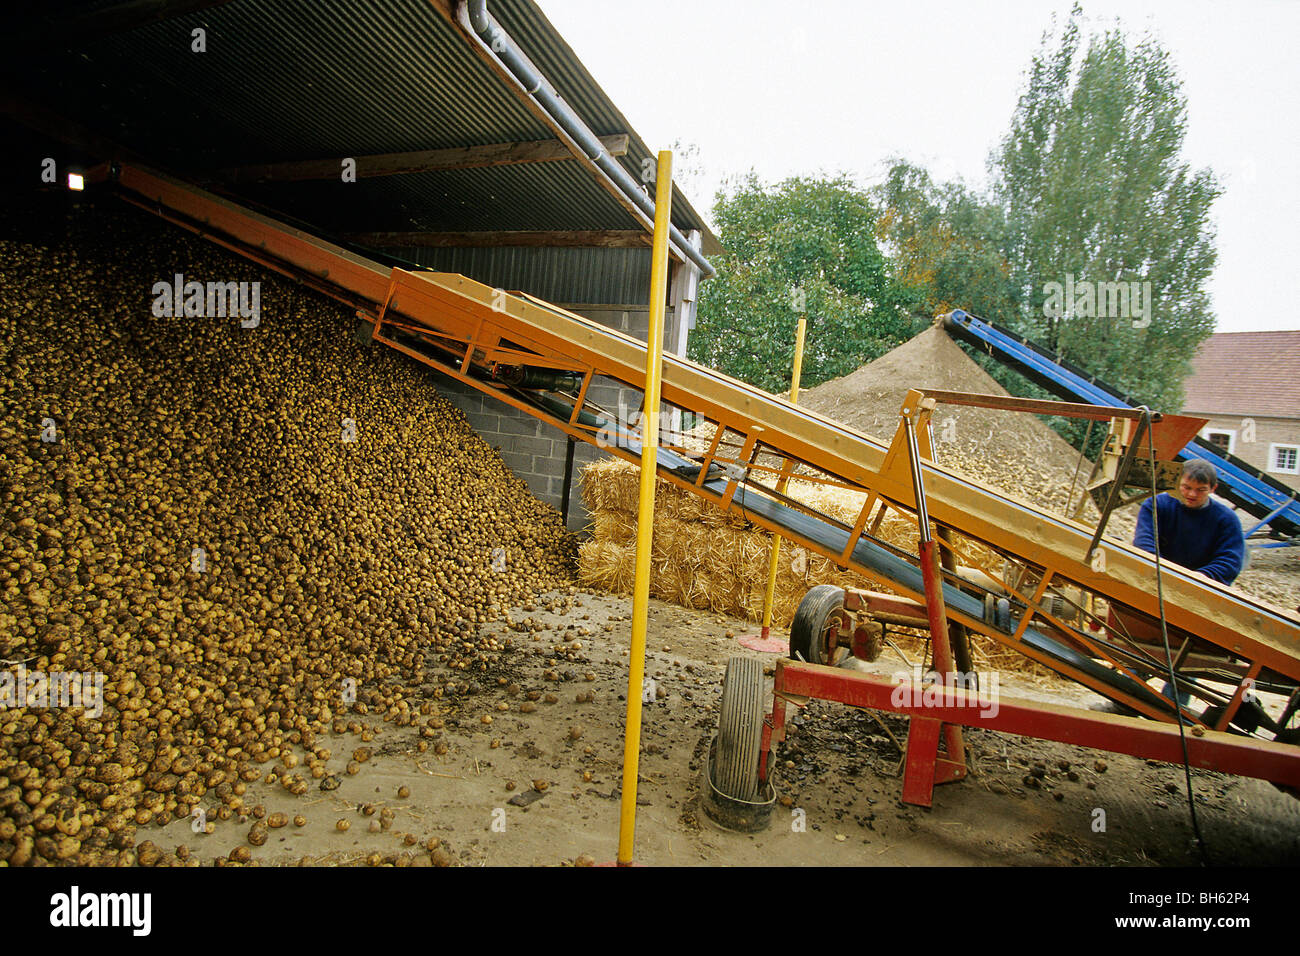 SORTING AND STORING POTATOES AT THE FARM AFTER THE HARVEST, NORTHERN FRANCE - Stock Image